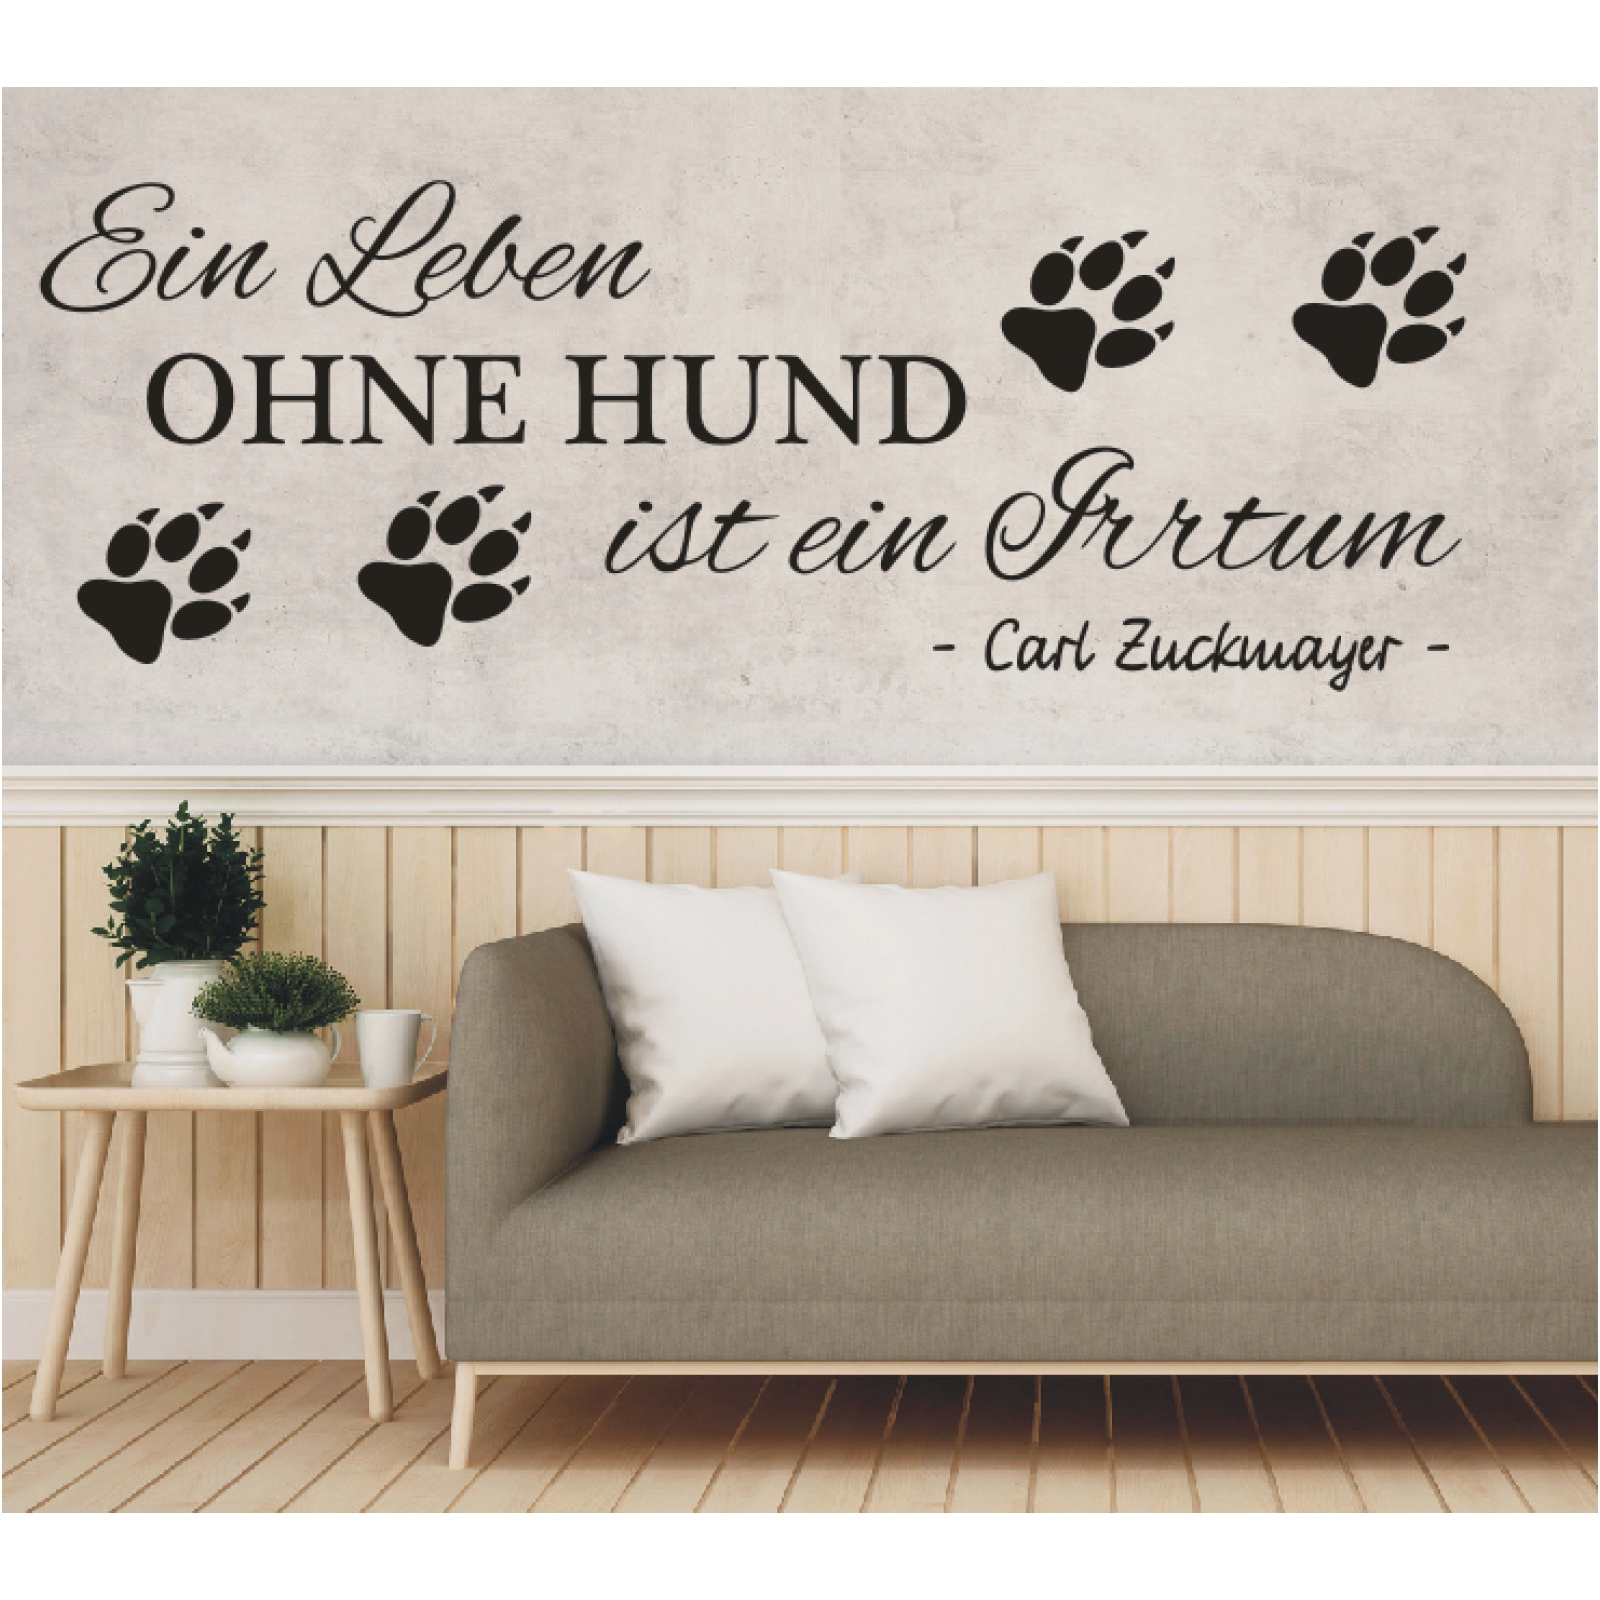 wandtattoo spruch ein leben ohne hund zitat wandsticker wandaufkleber sticker 2 ebay. Black Bedroom Furniture Sets. Home Design Ideas